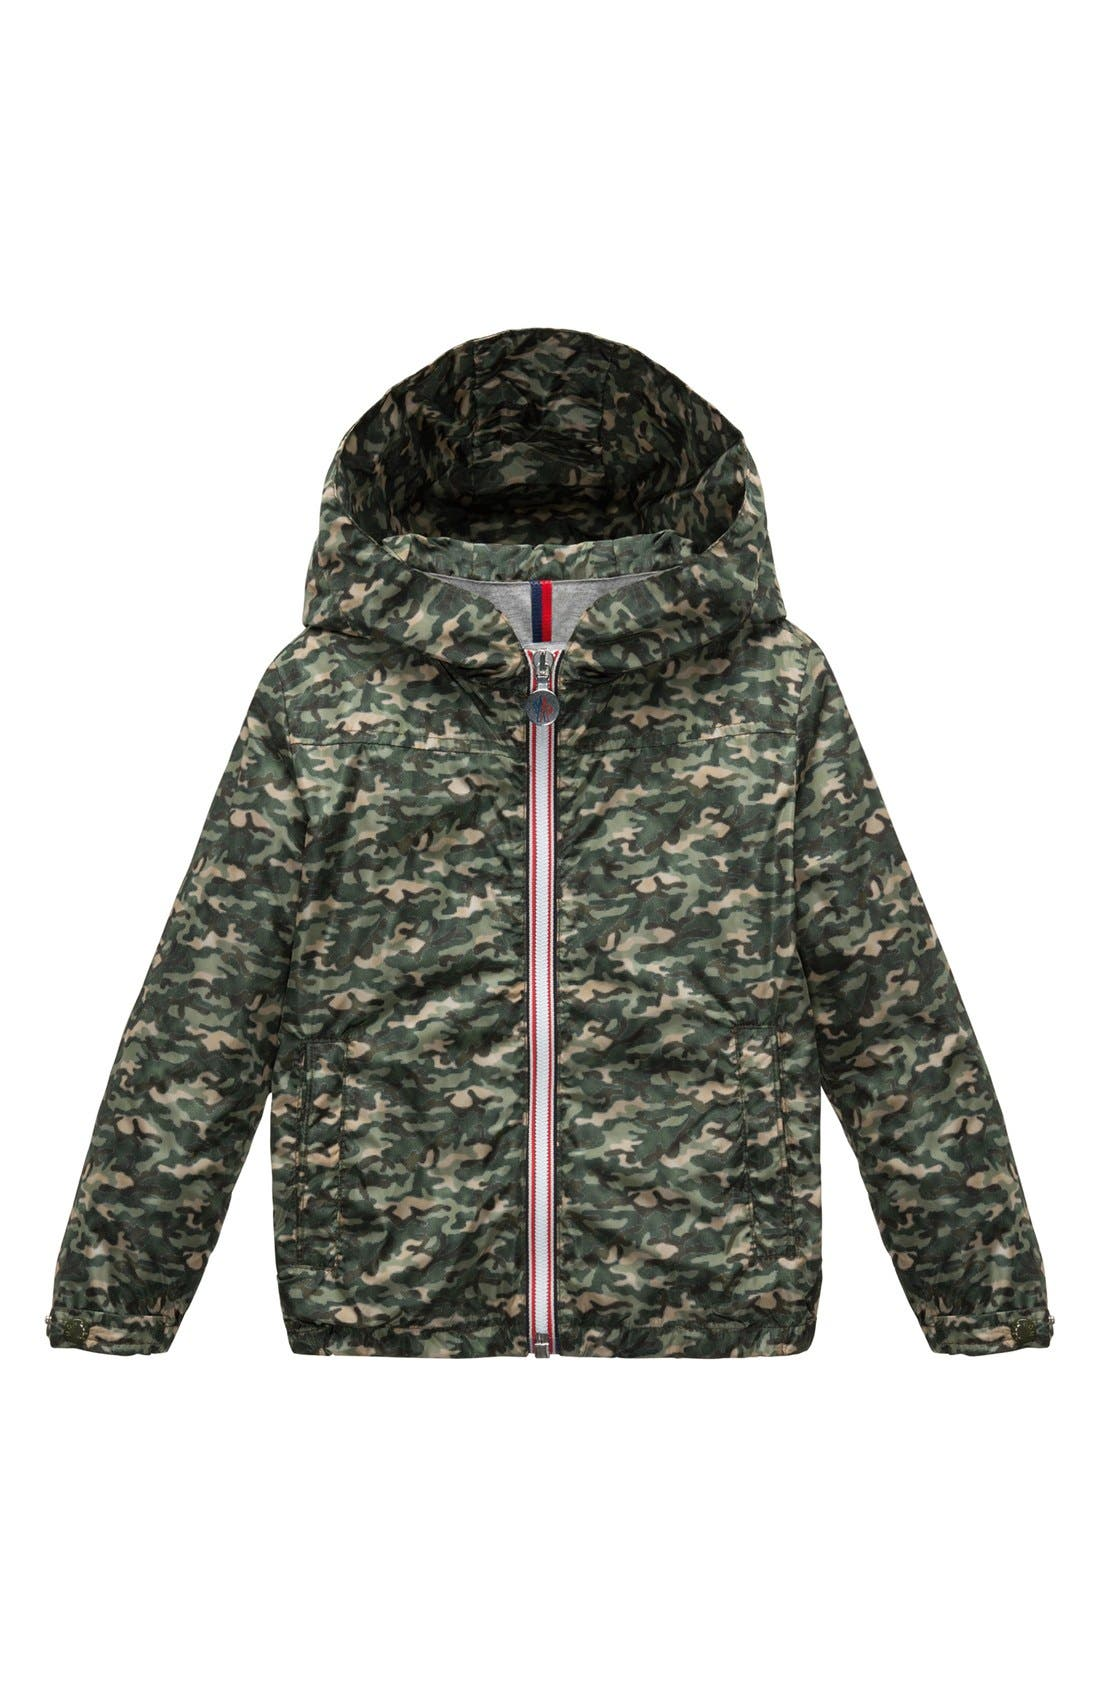 Alternate Image 1 Selected - Moncler Camo Jacket (Big Boys)